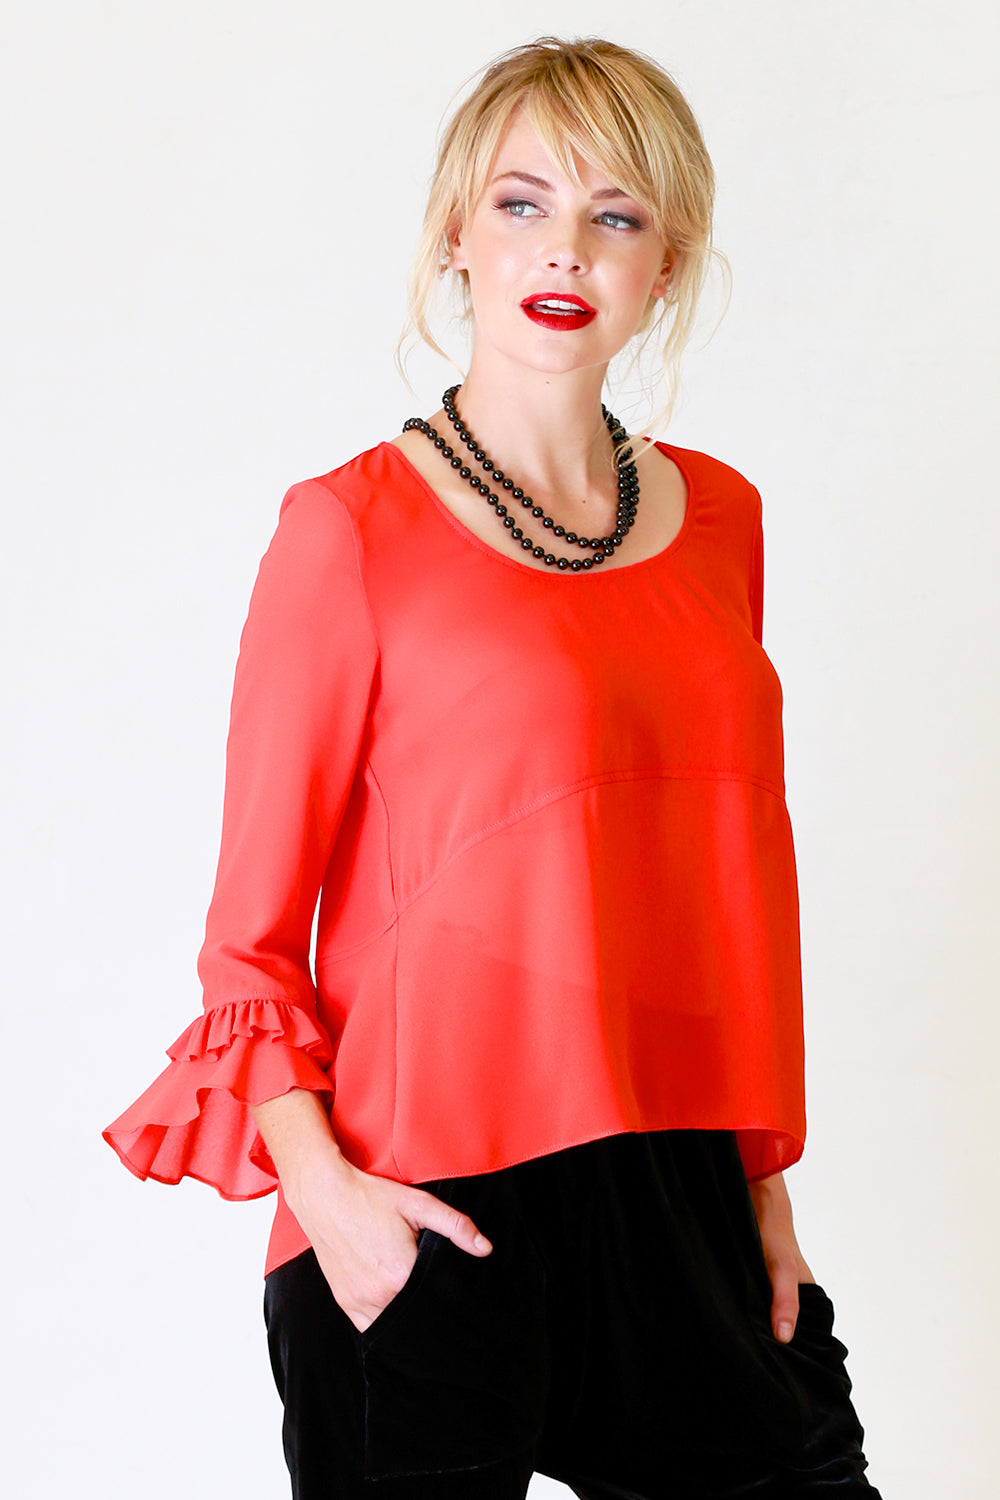 Glenys Top, Annah Stretton AW19, Ruffle Sleeve Red Top, Shot on Model